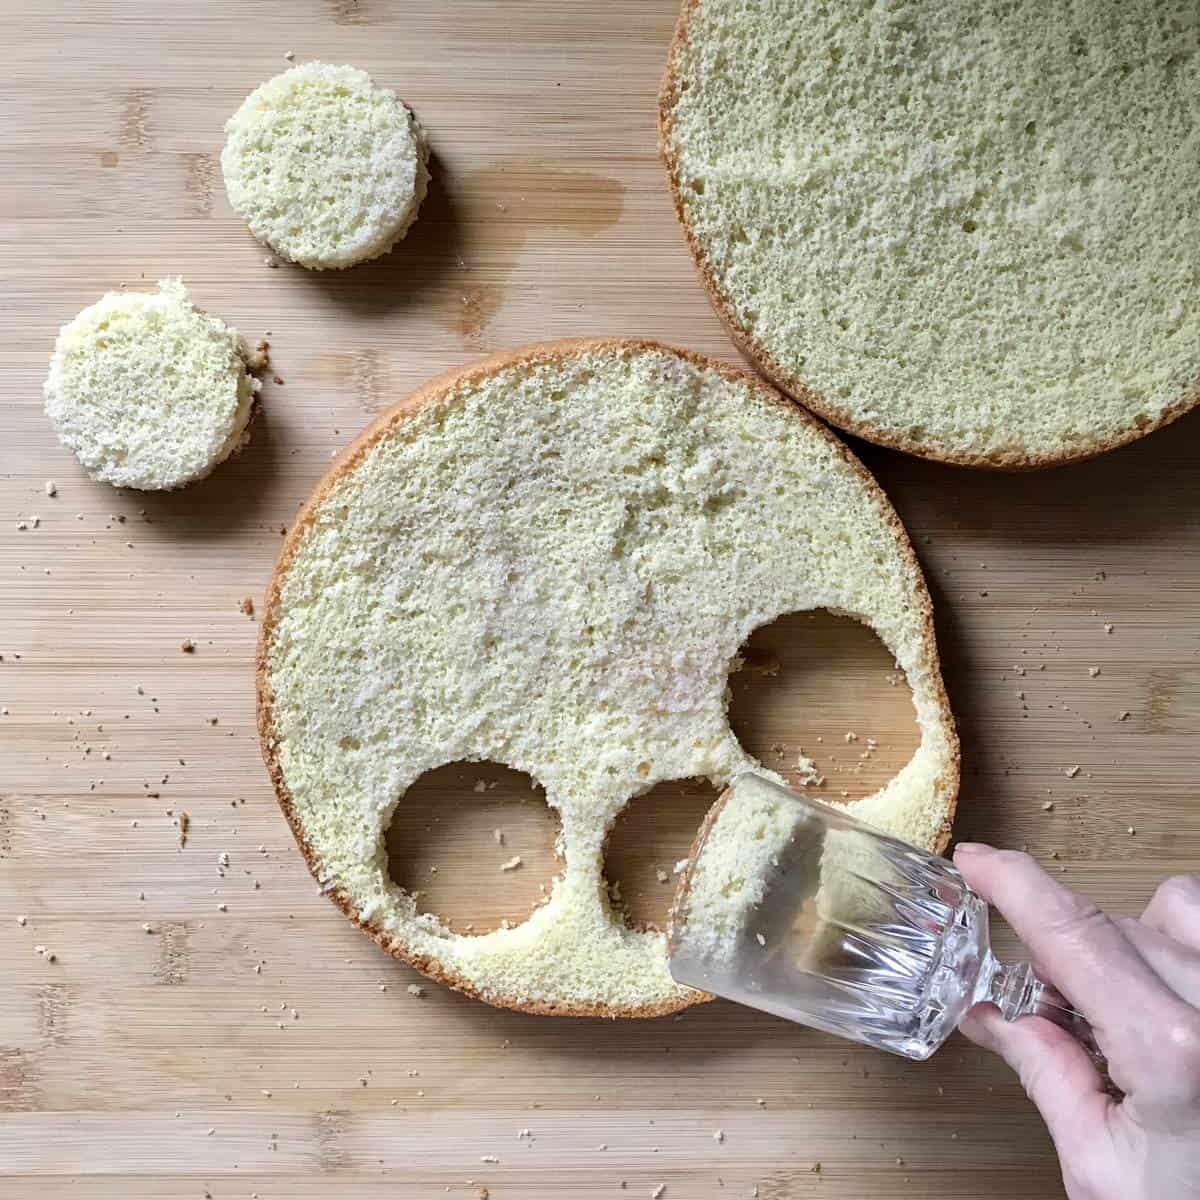 Round pieces of cake being formed with a glass.